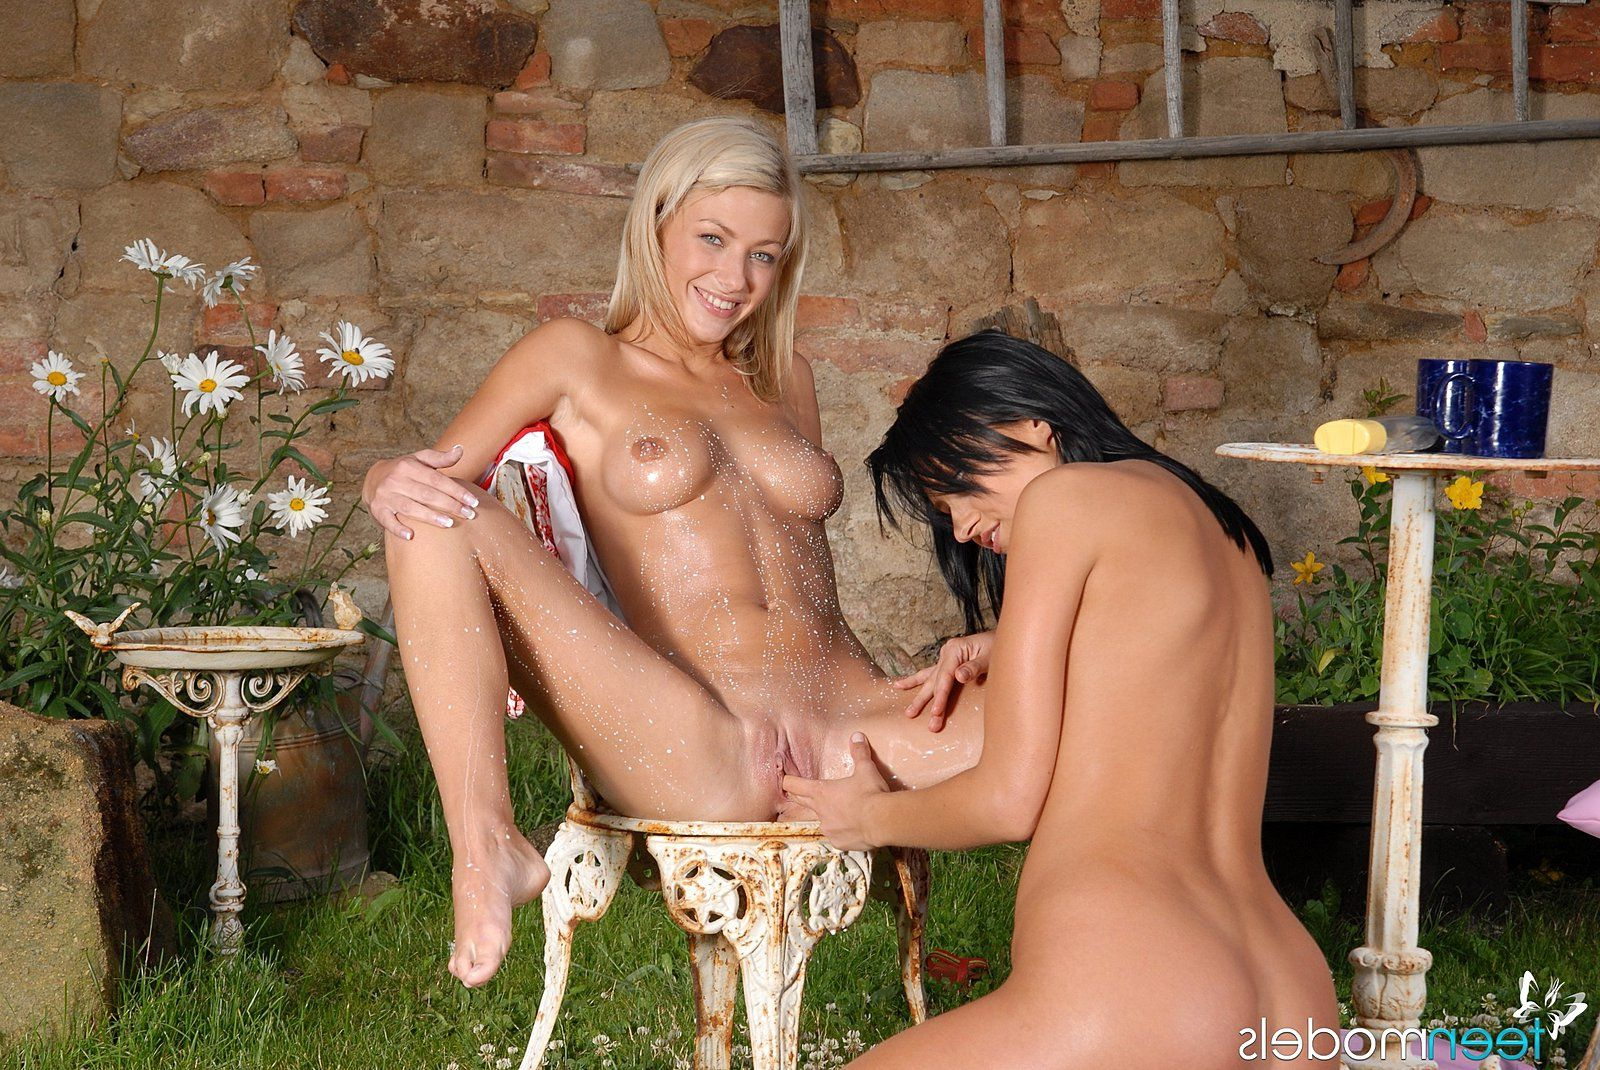 Blonde girl sex with dog